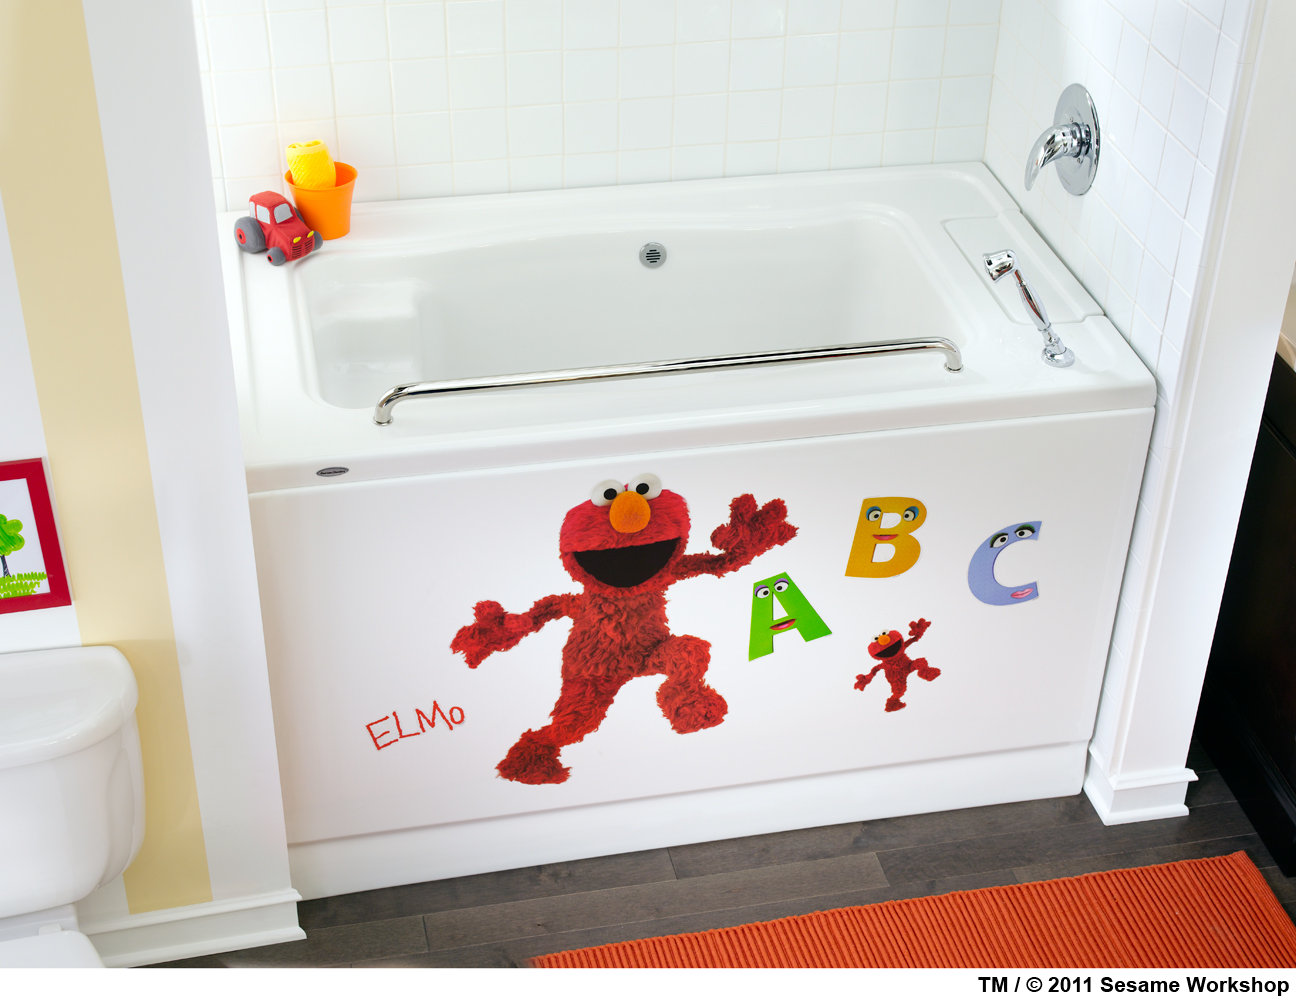 Amazon.com: American Standard STKR.004 Elmo Decal Set by Roomates